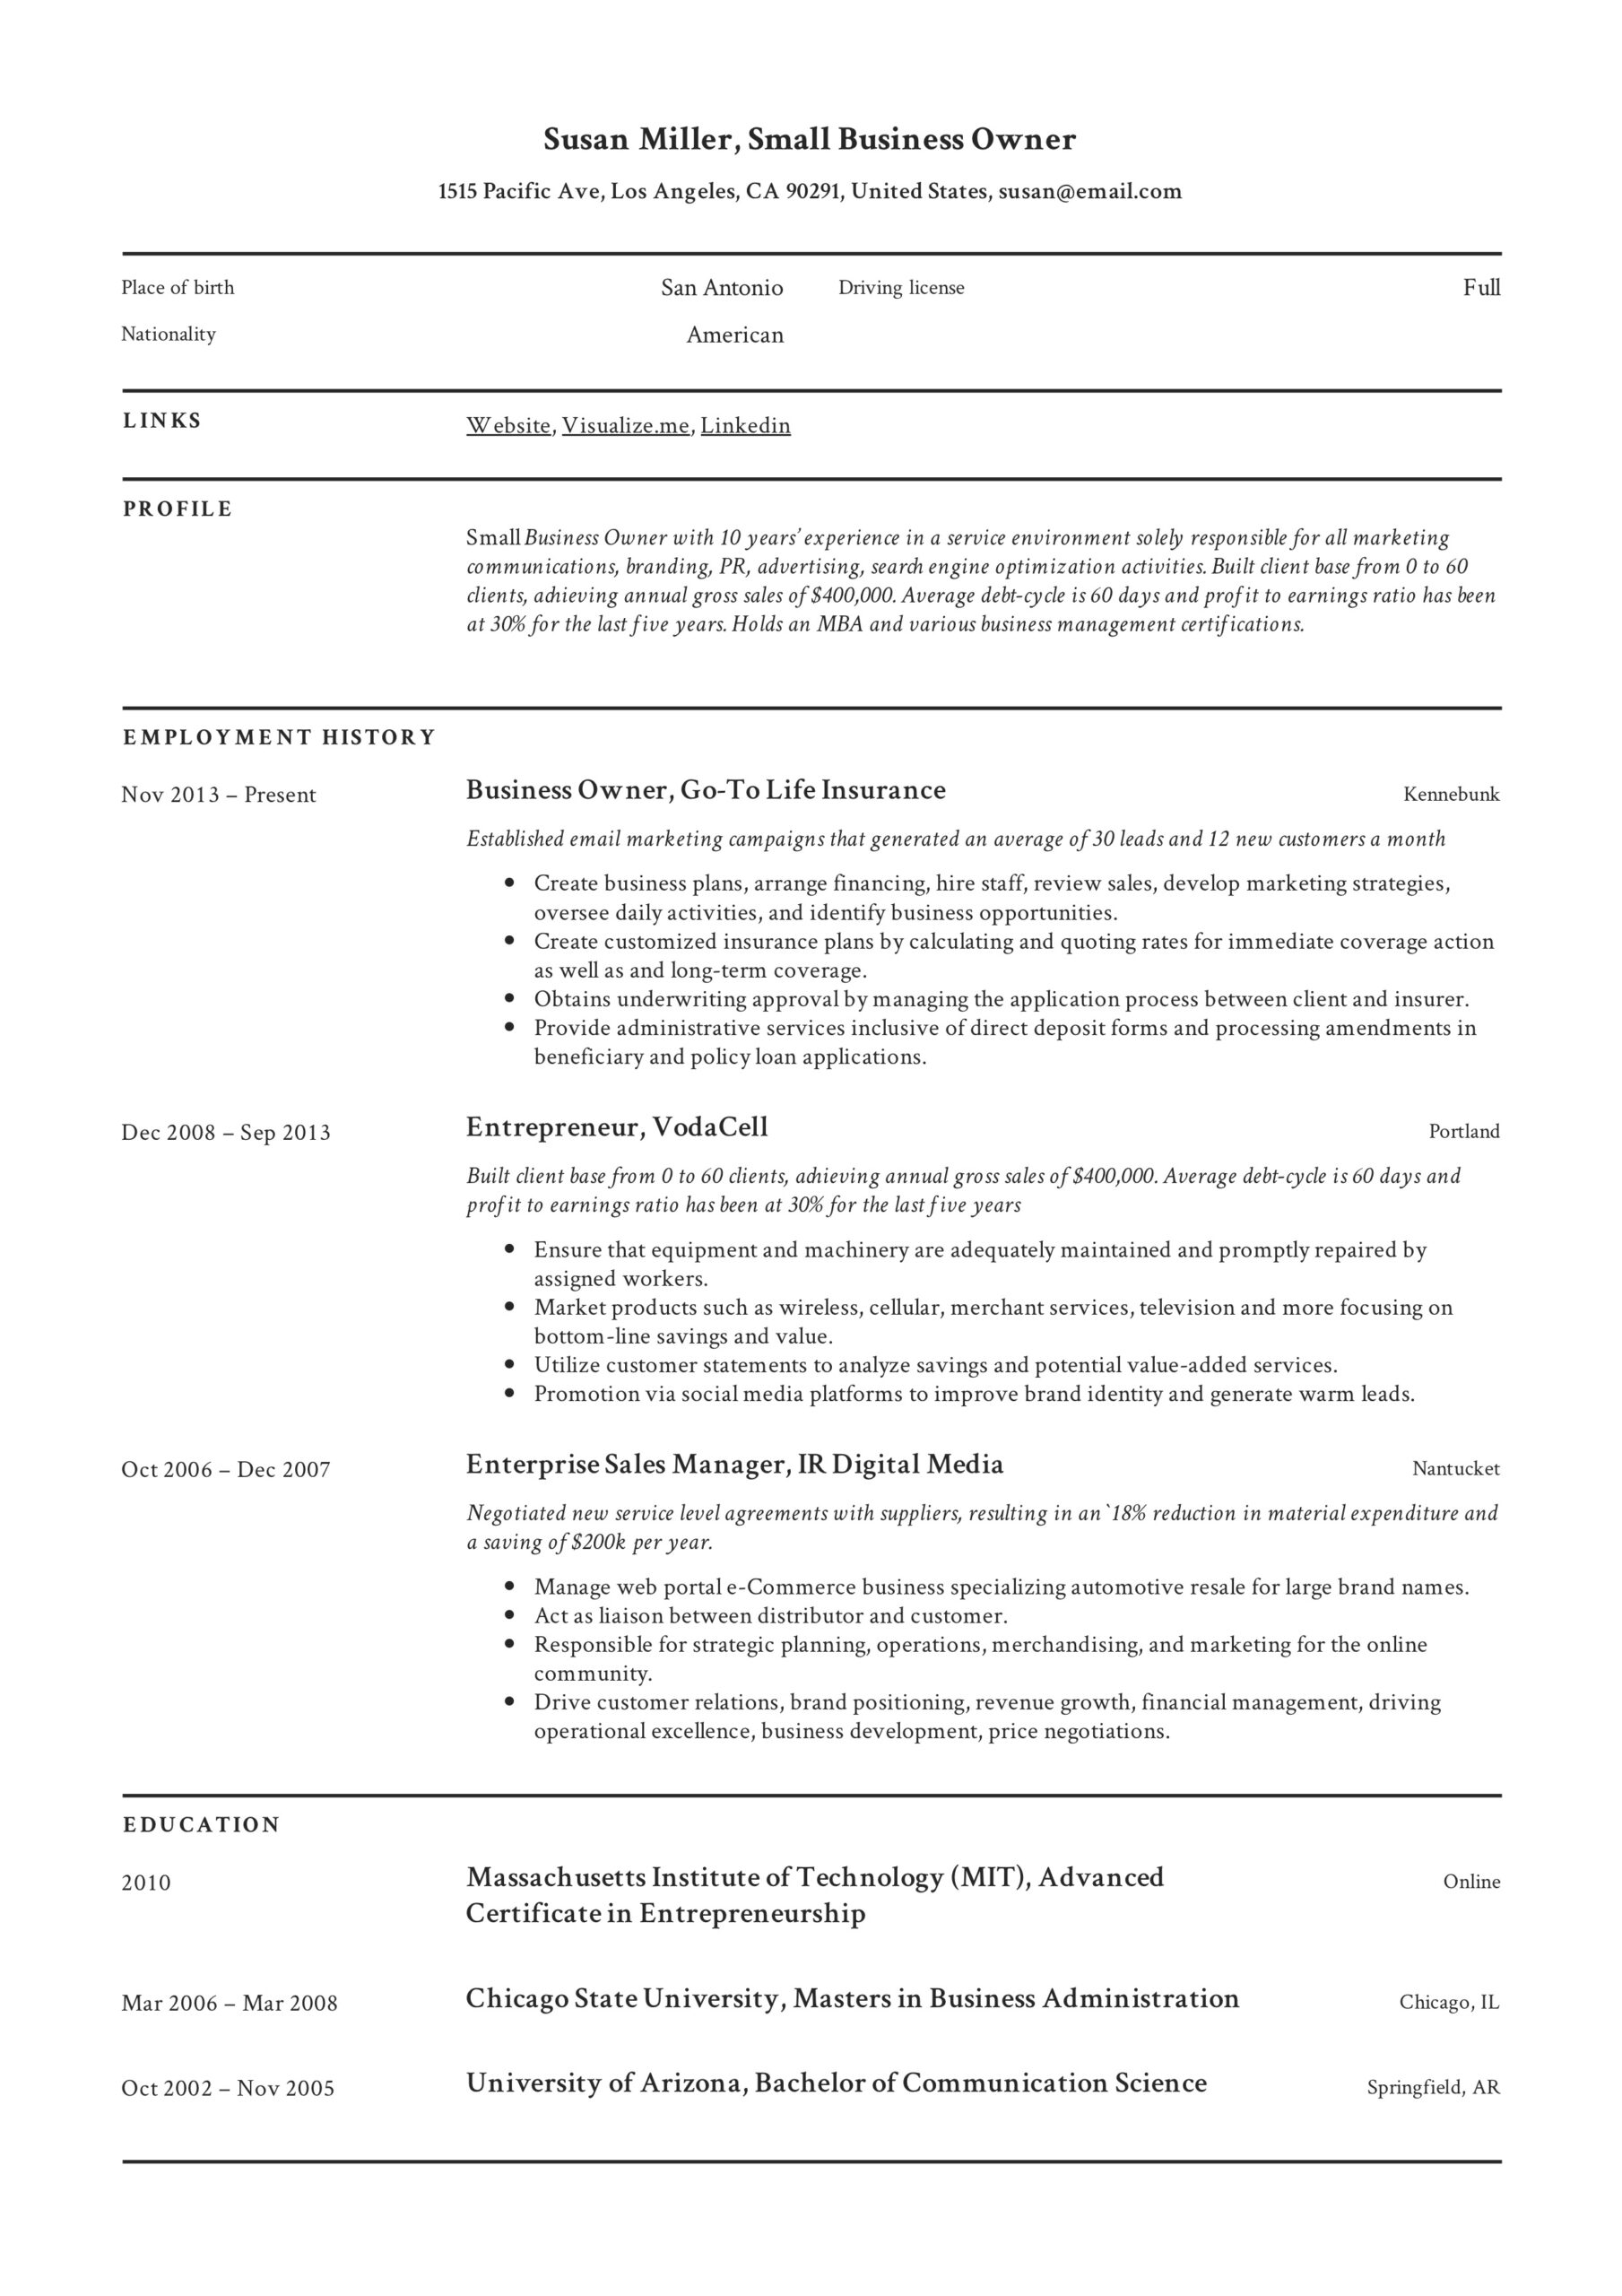 small business owner resume guide examples pdf entrepreneur example cnc operator Resume Entrepreneur Resume Examples